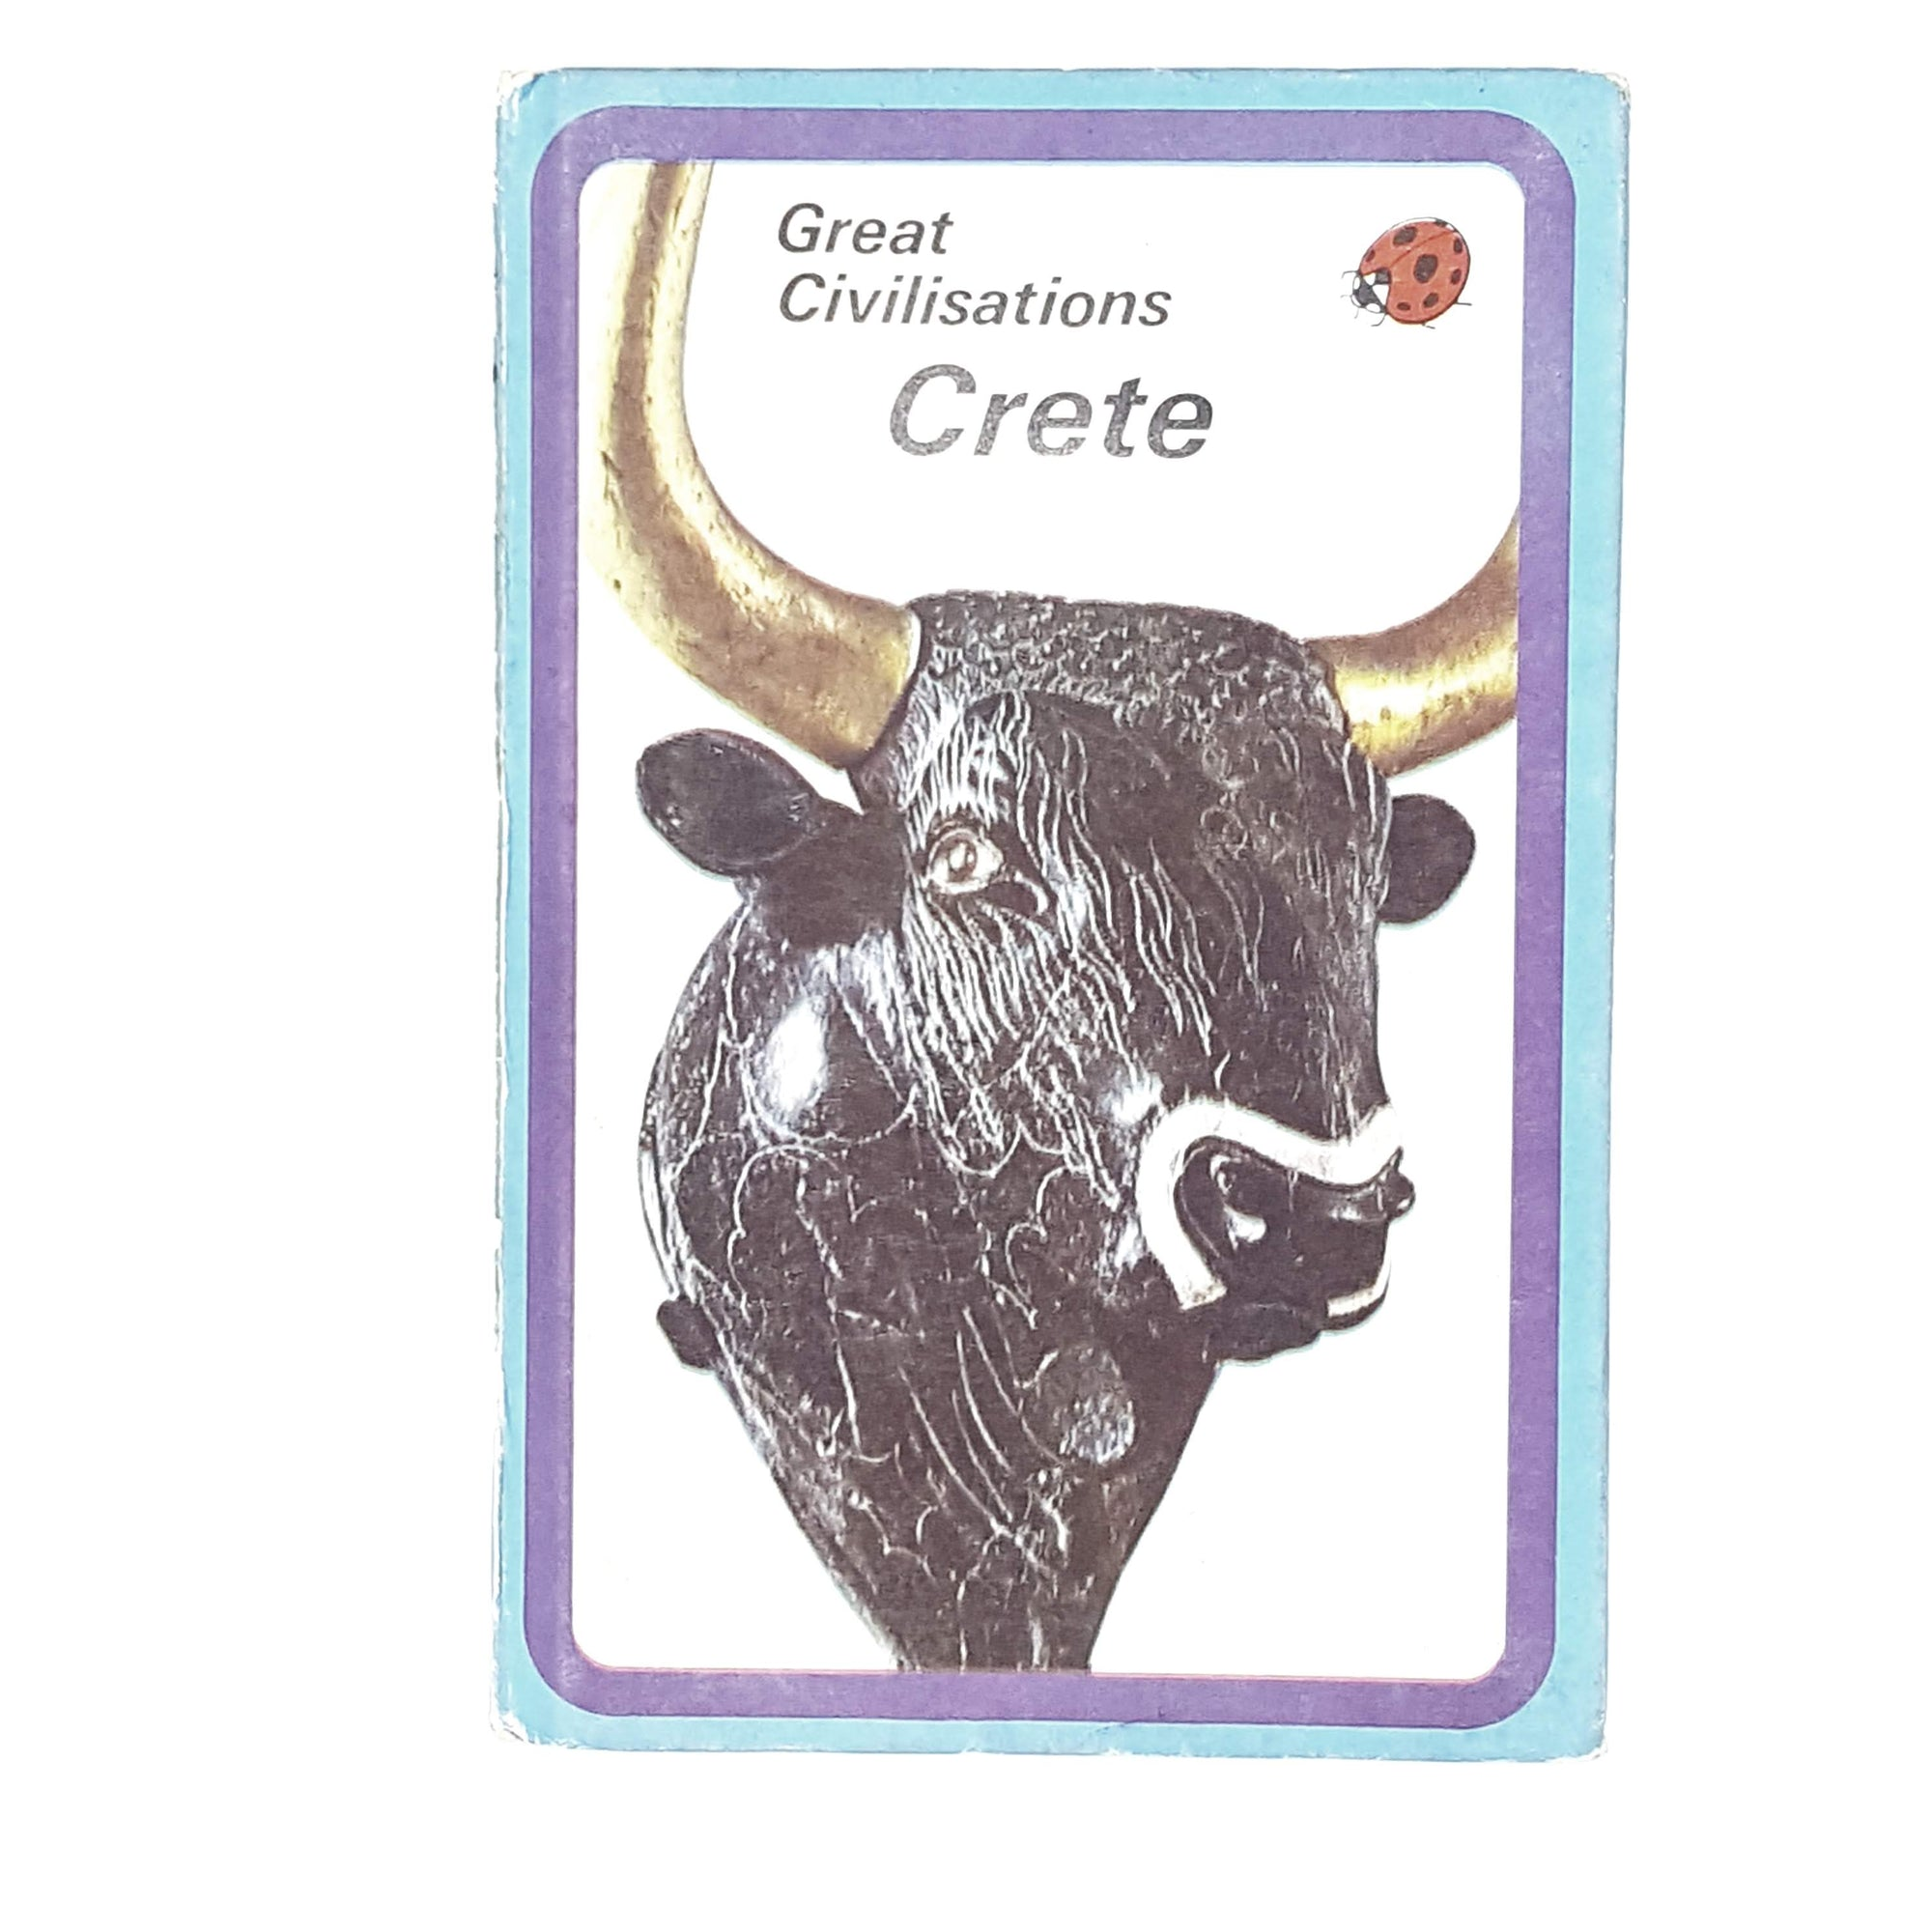 ladybird-history-crete-1976-vintage-kindergarten-books-online-bookstore-country-house-library